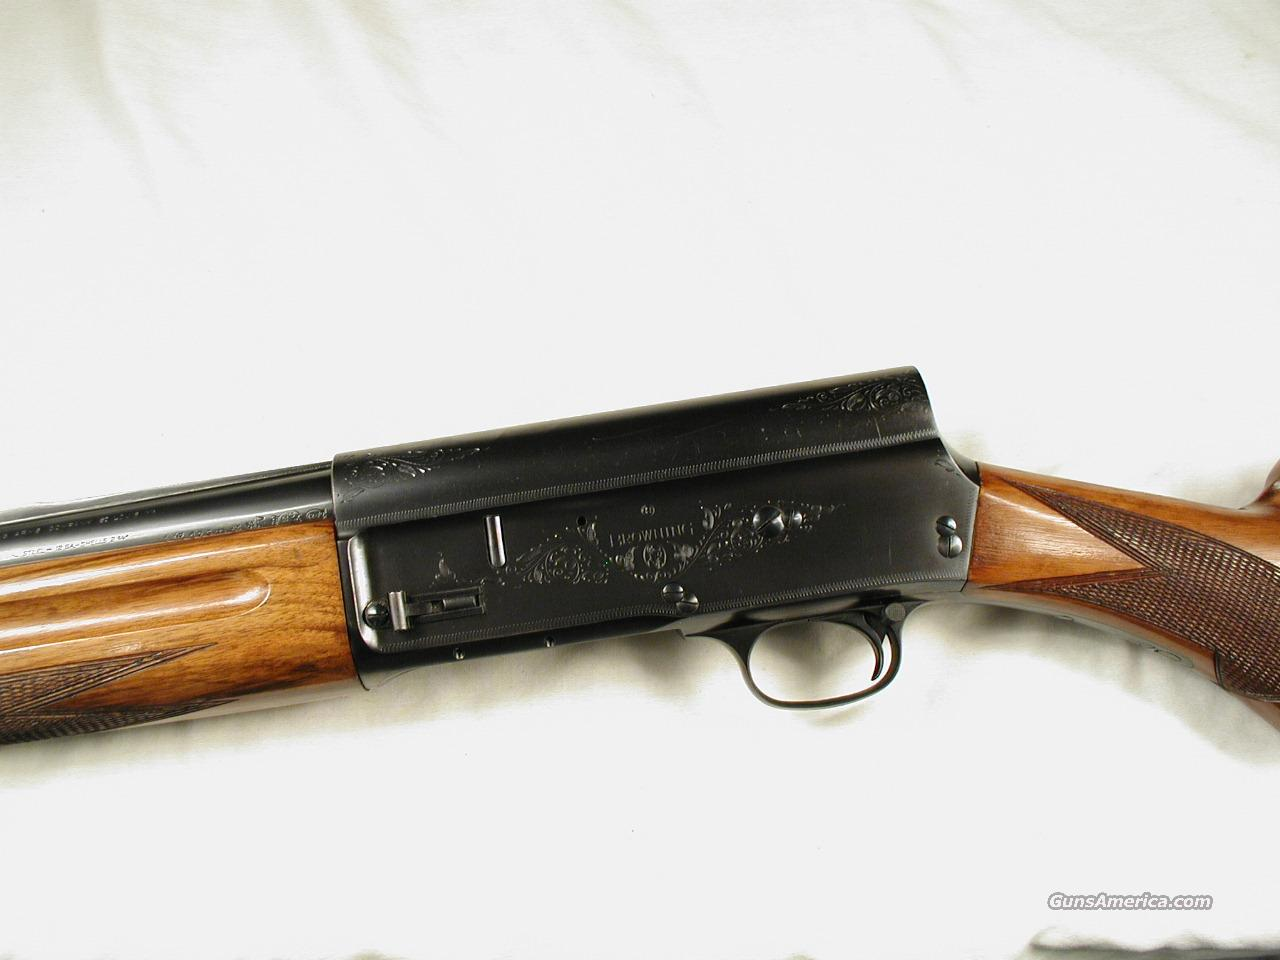 1953 BELGIUM BROWNING  Guns > Shotguns > Browning Shotguns > Autoloaders > Hunting